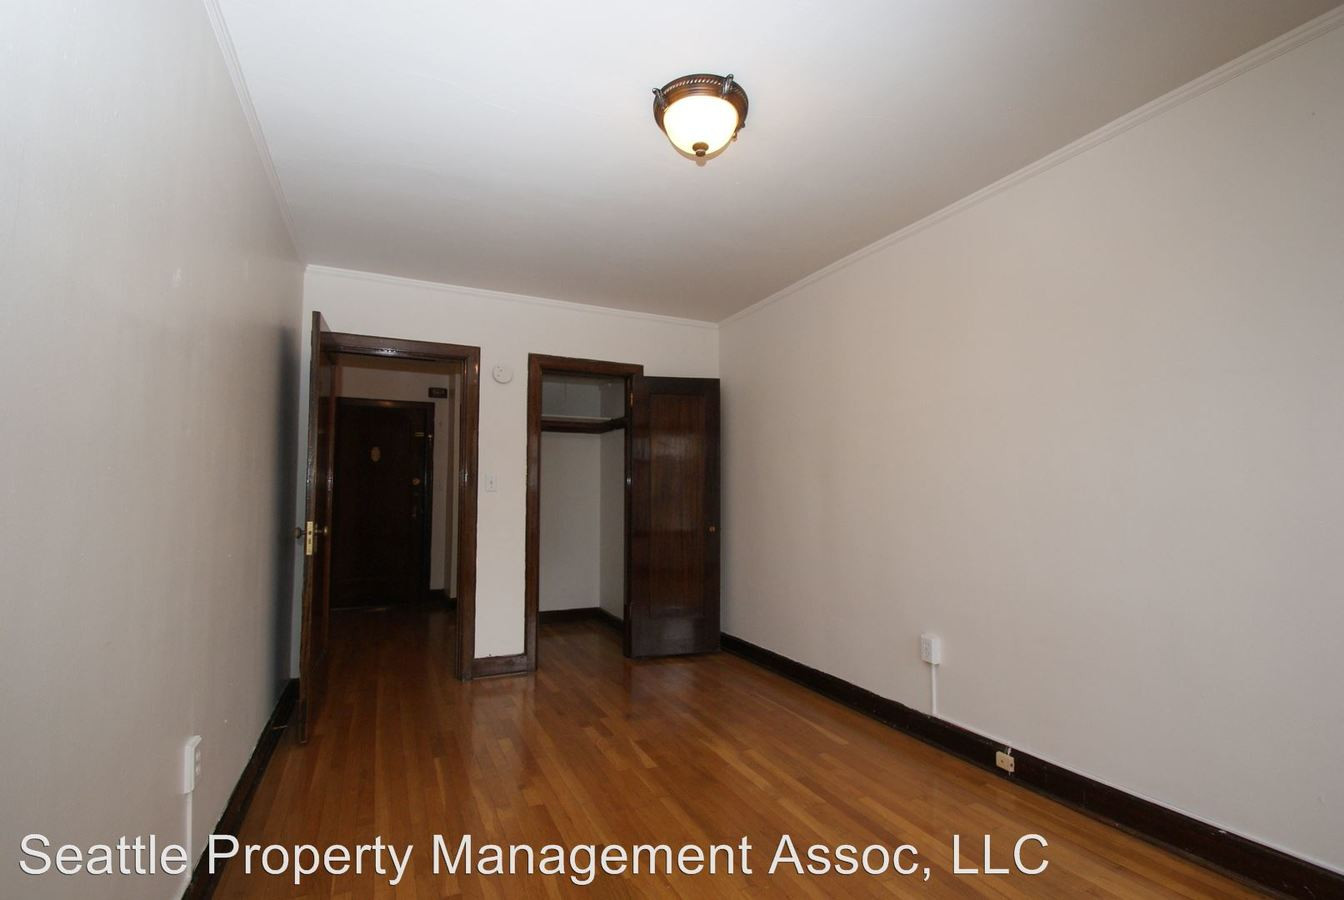 cheap hardwood flooring seattle of 105 harvard ave e seattle wa apartment for rent in large